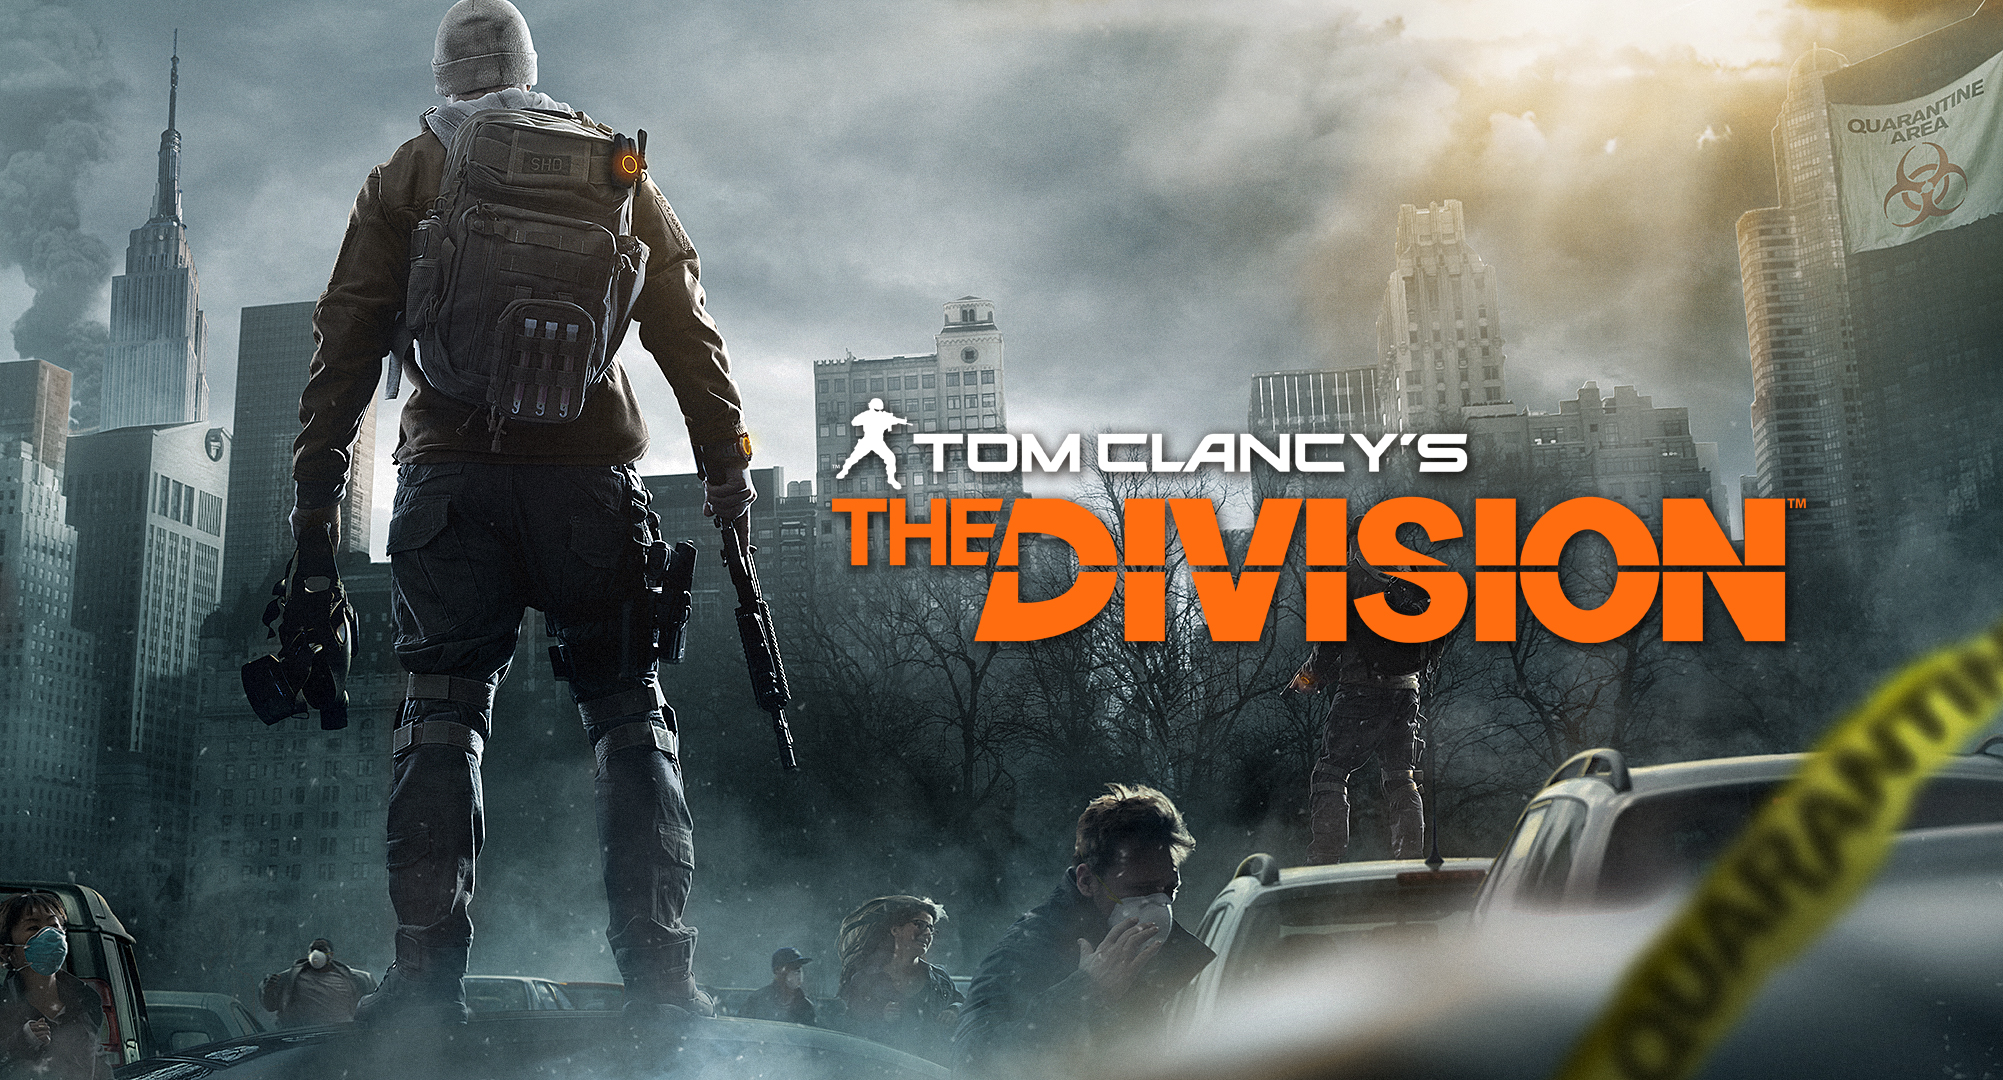 Will The Division be the biggest multiplayer game of the year?